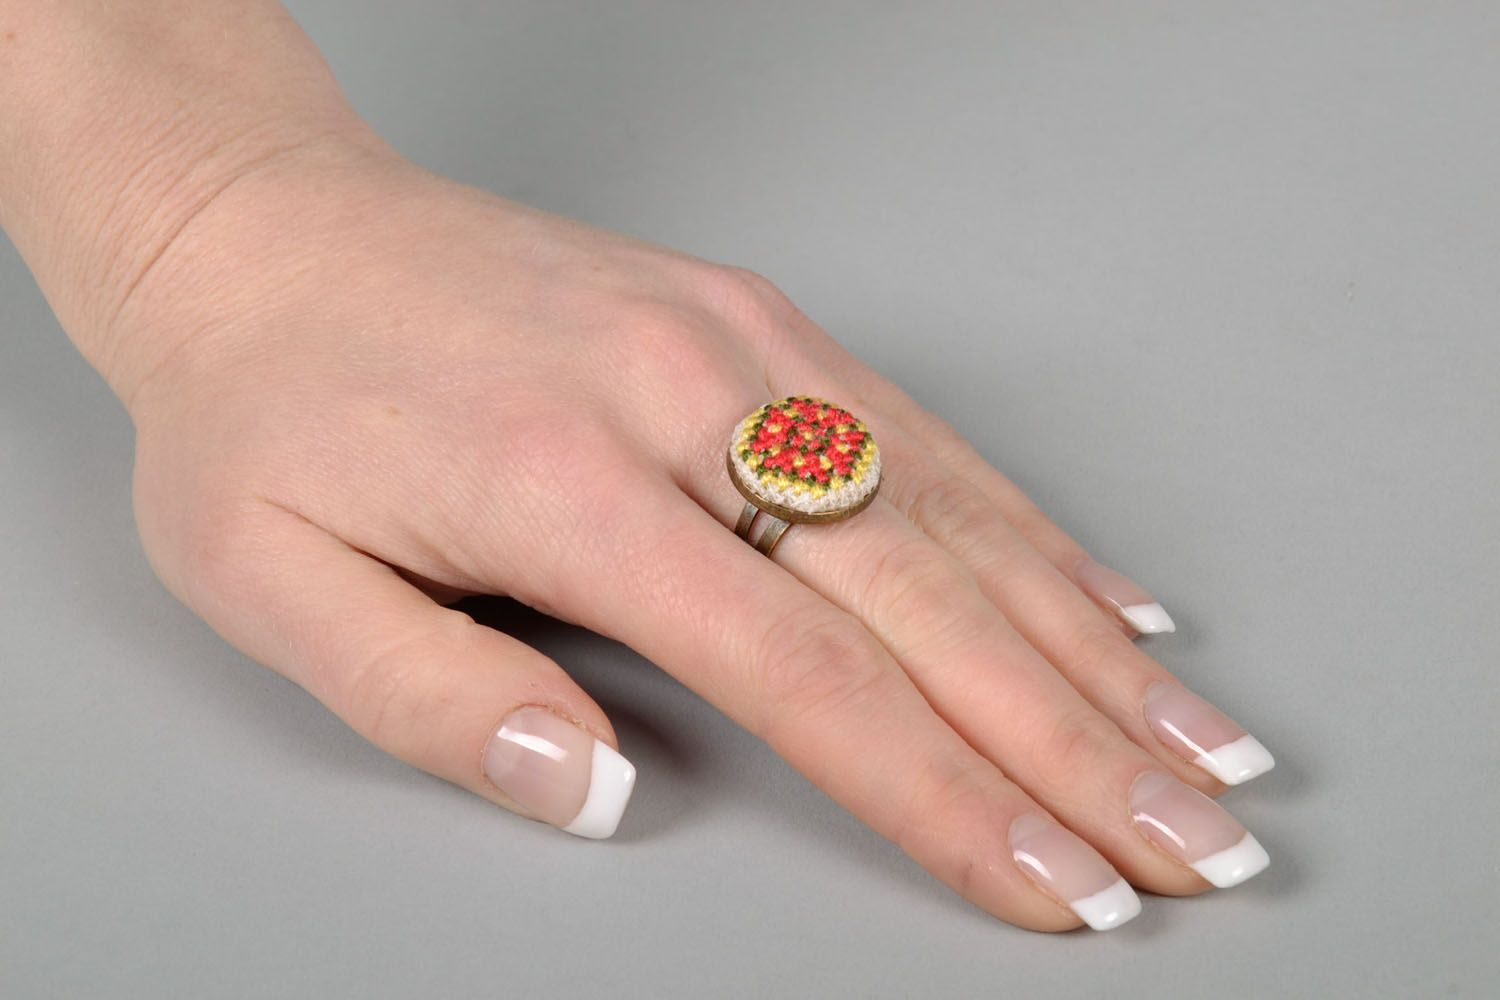 Women's seal ring with embroidery photo 5